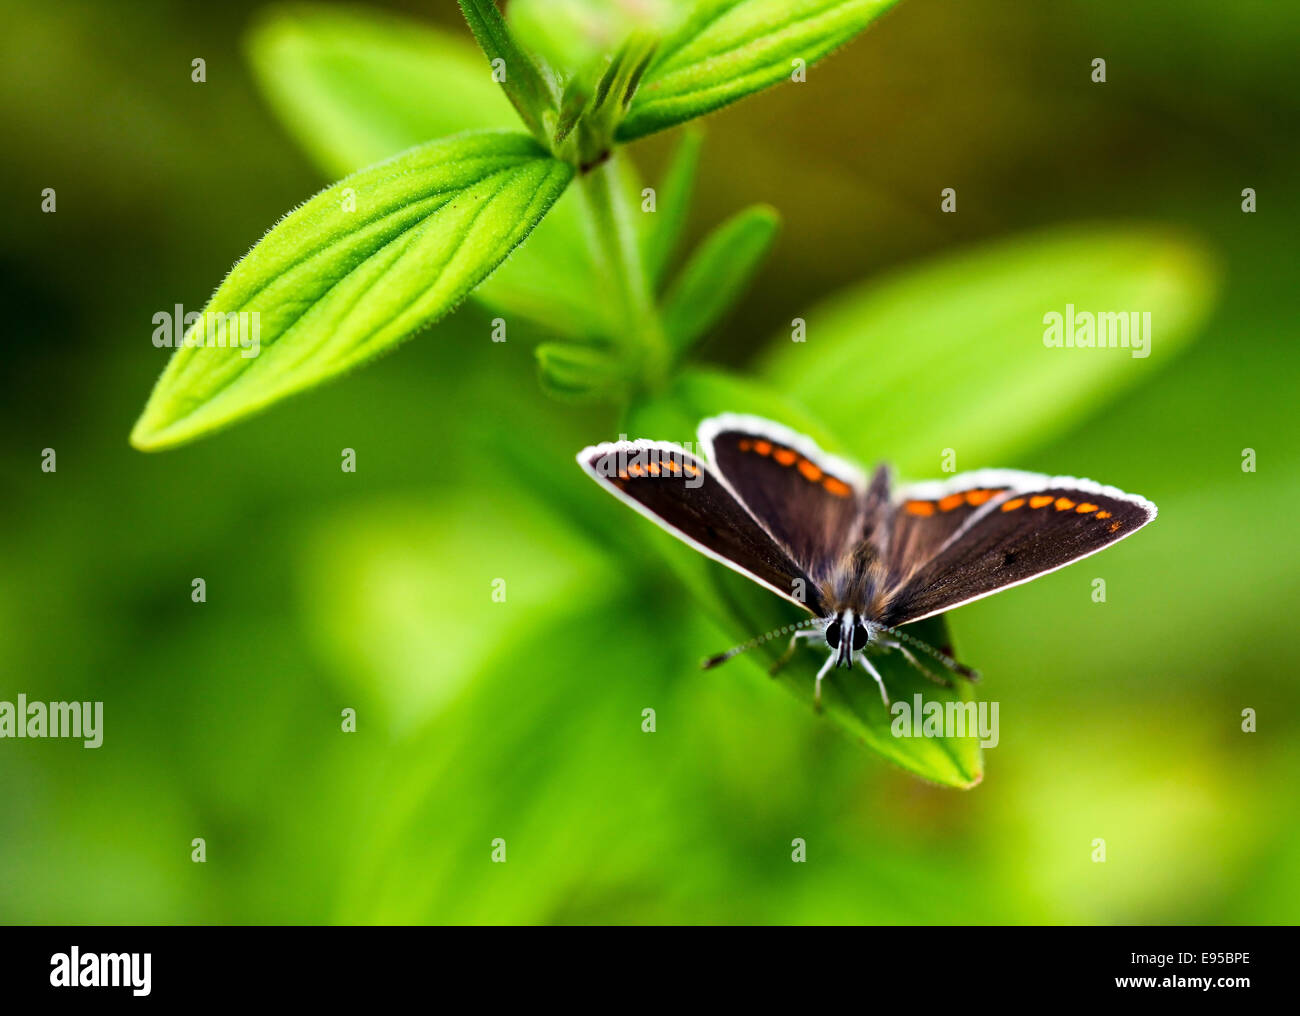 a-brown-argus-aricia-agestis-butterfly-resting-on-a-green-leaf-england-E95BPE.jpg